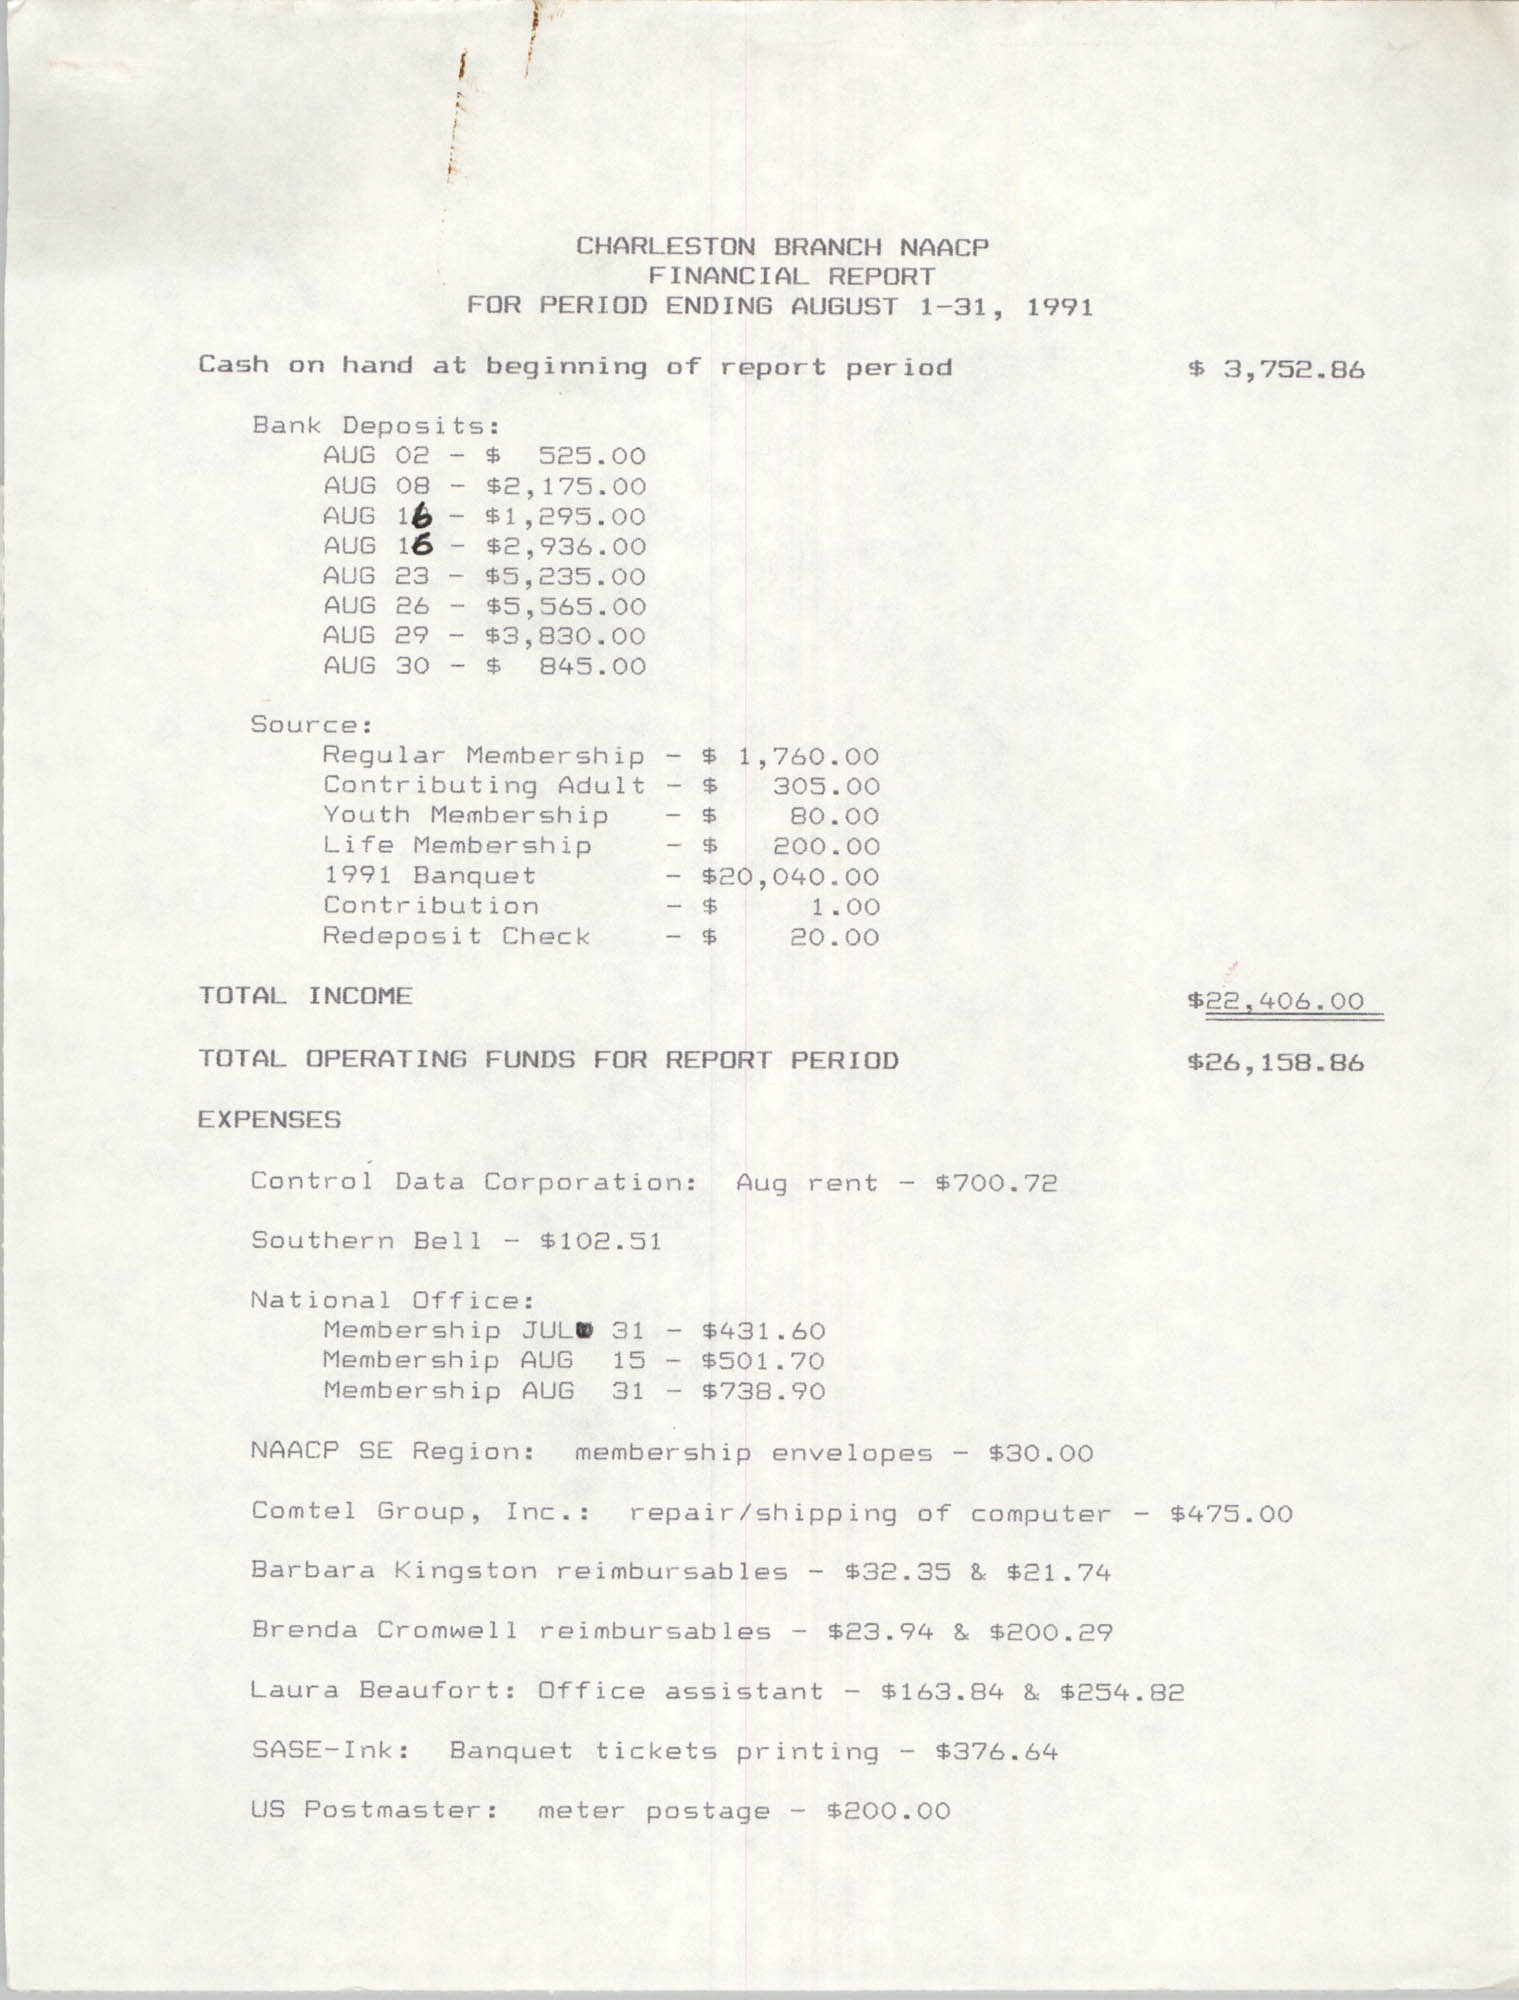 Charleston Branch of the NAACP Financial Report, August 1991, Page 1